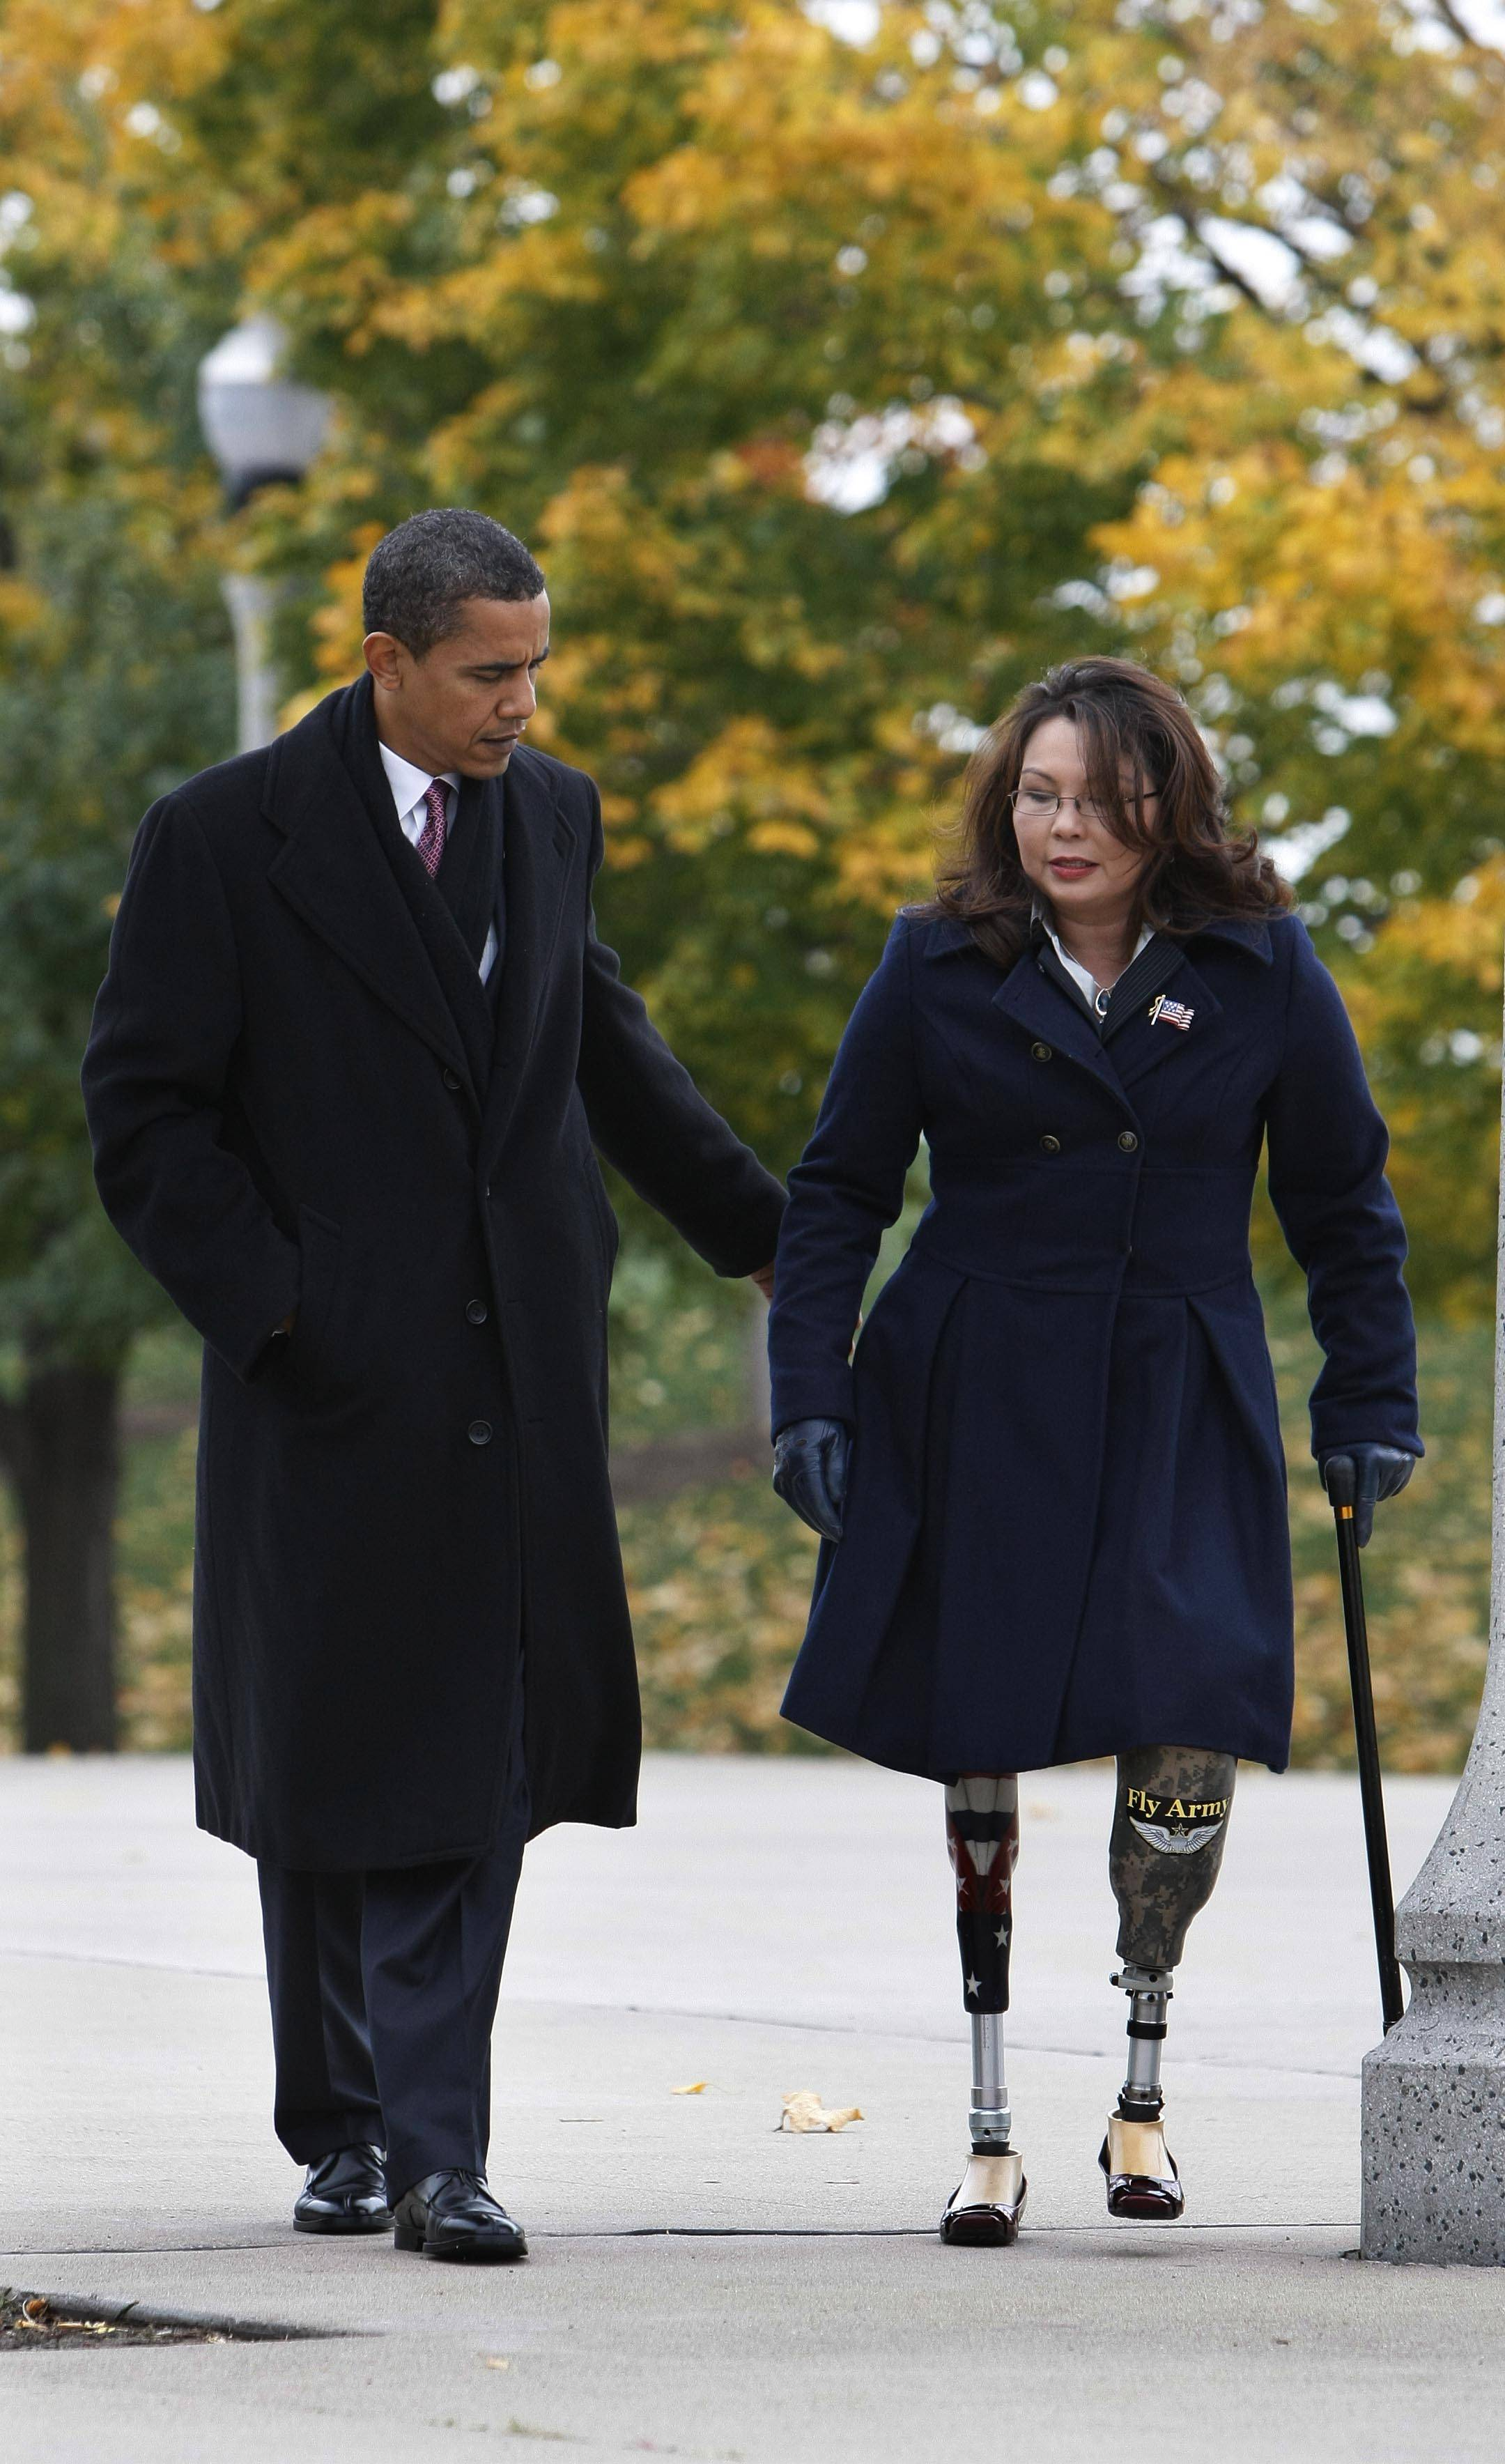 Obama signs Duckworth bill to prevent veteran suicides